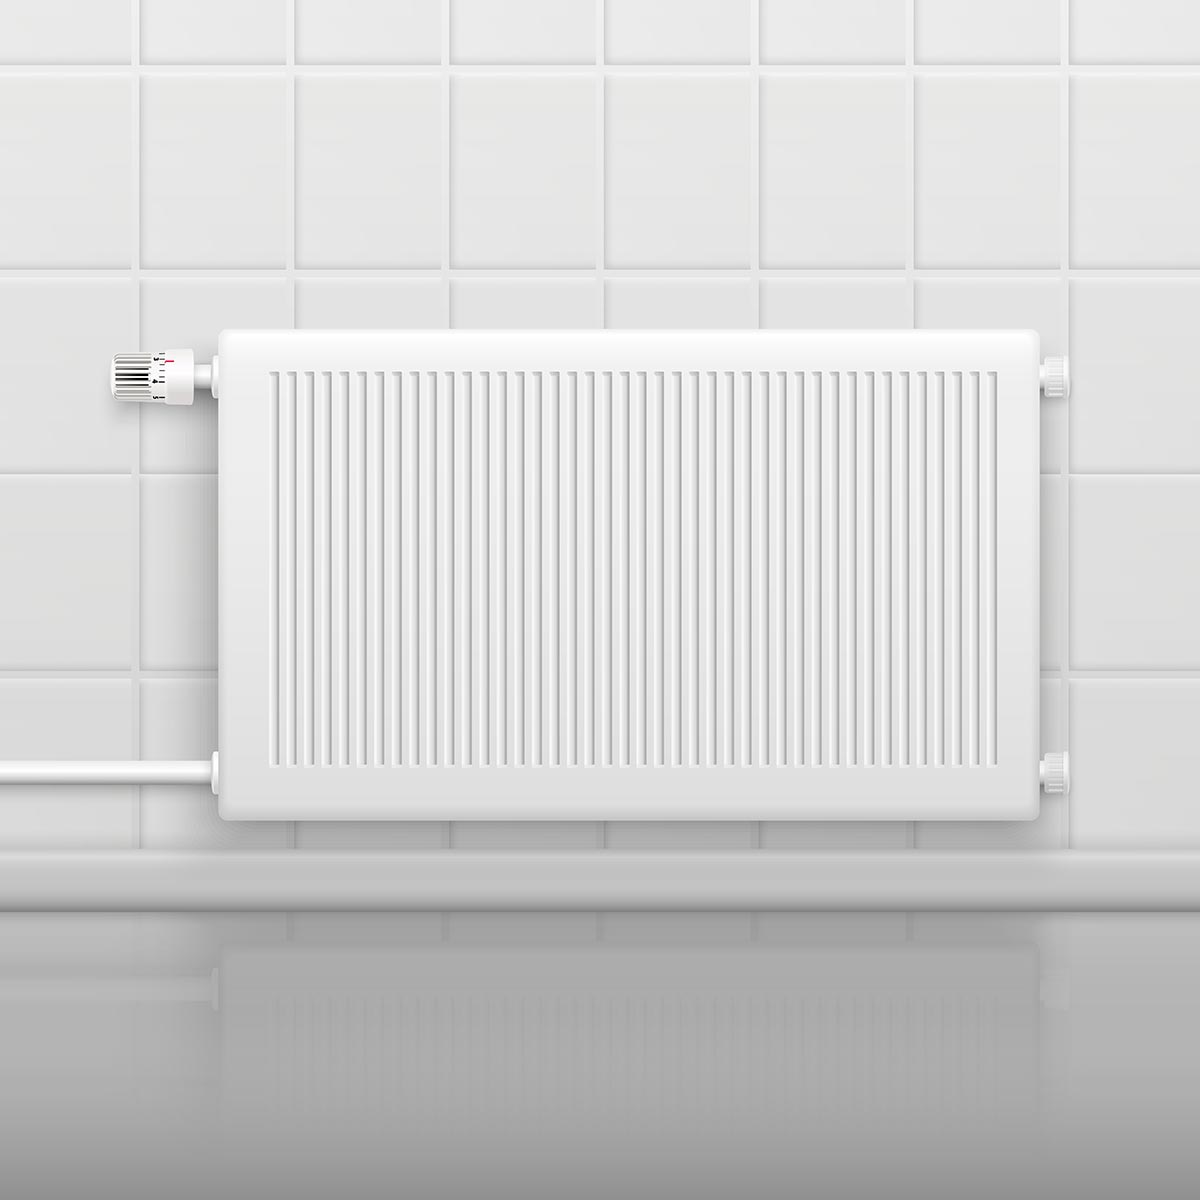 Hor water radiator heating with temperature control knob on tiled wall side view realistic image vector illustration